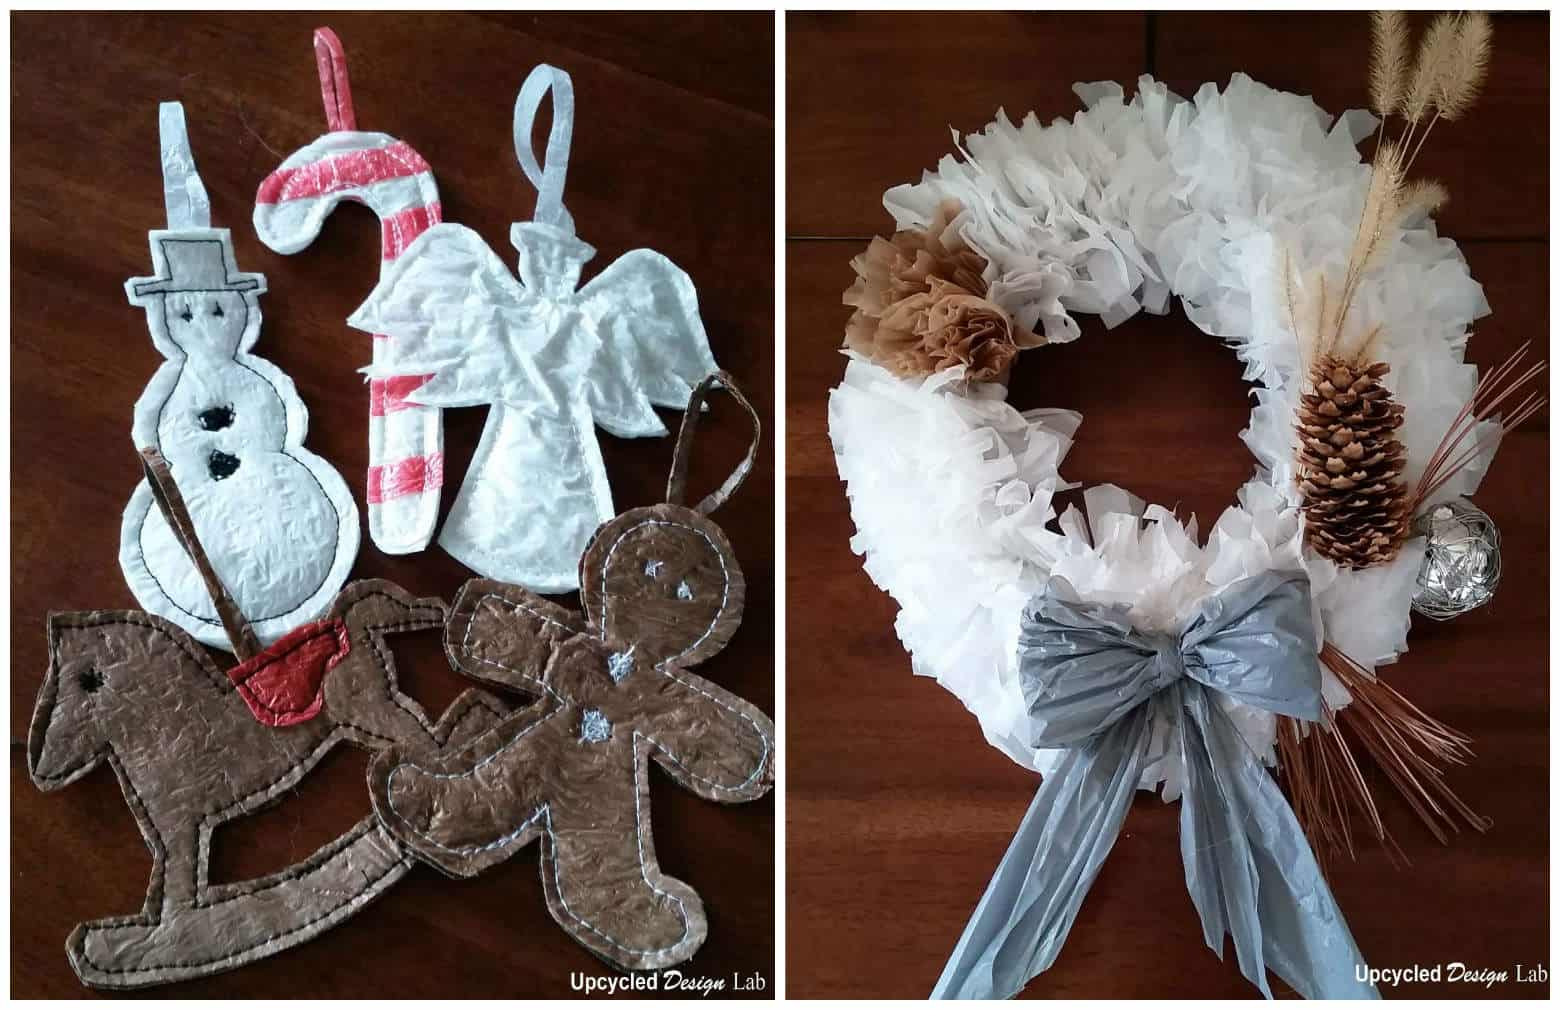 Upcycled Plastic Bag Into Christmas Decorations Recyclart